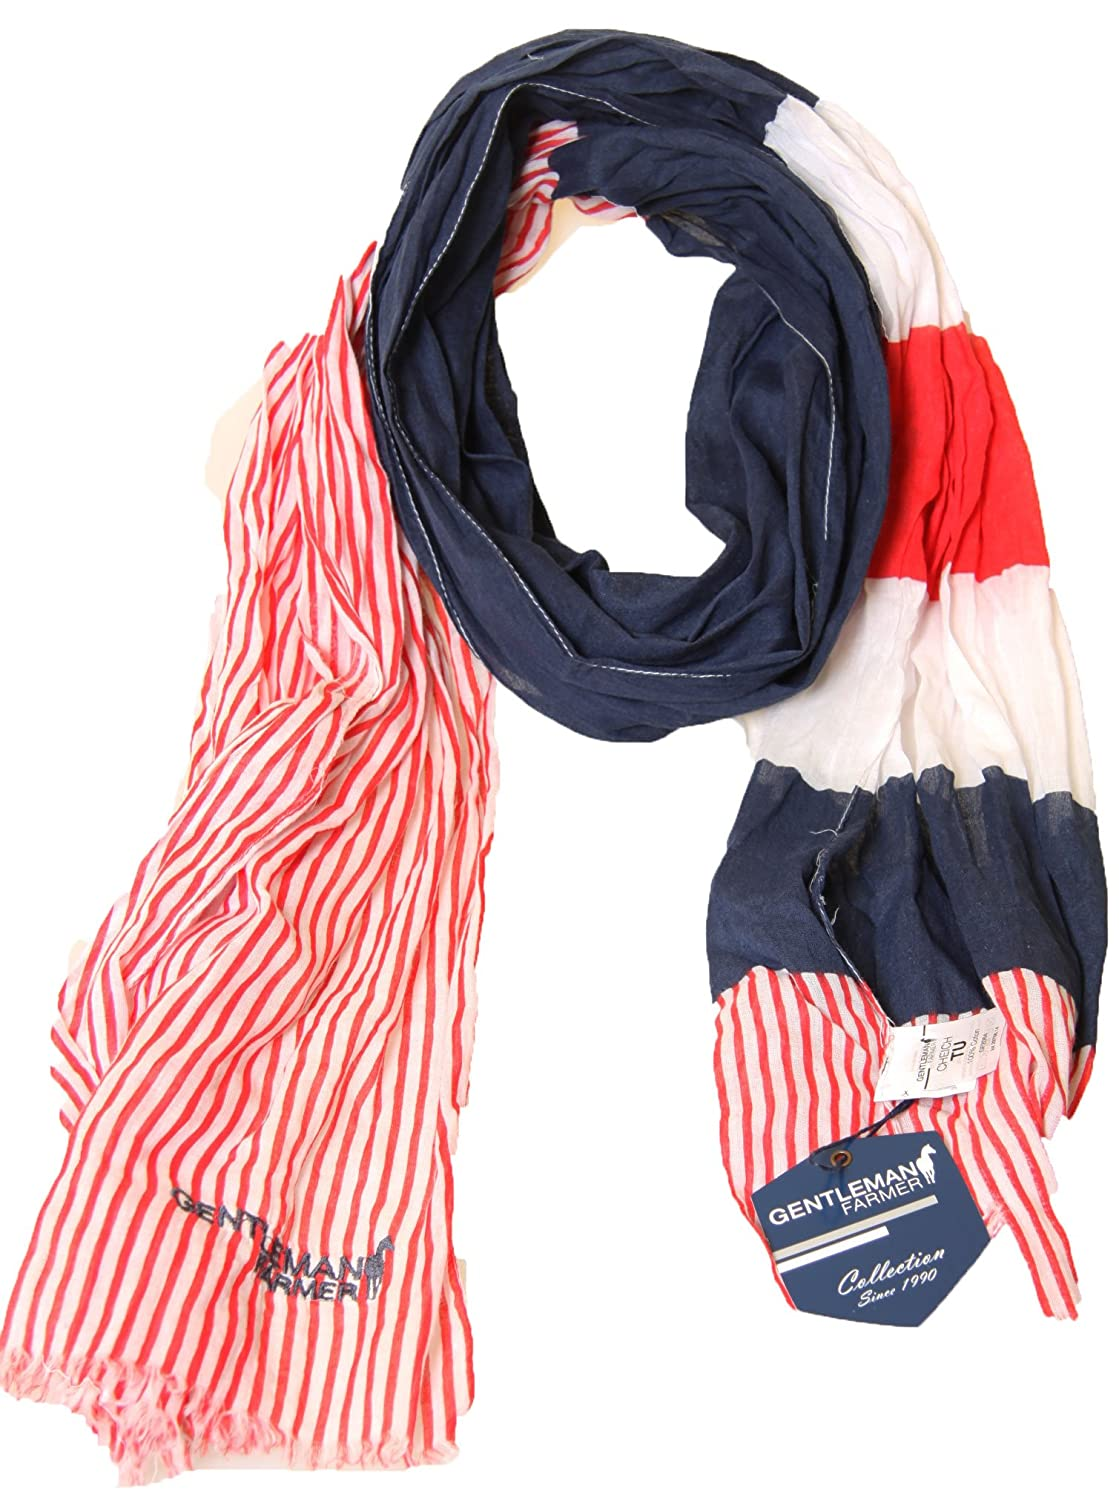 Neck Scarf Tagelmust Gentleman Farmer Chech Blue or Red 100/% Cotton